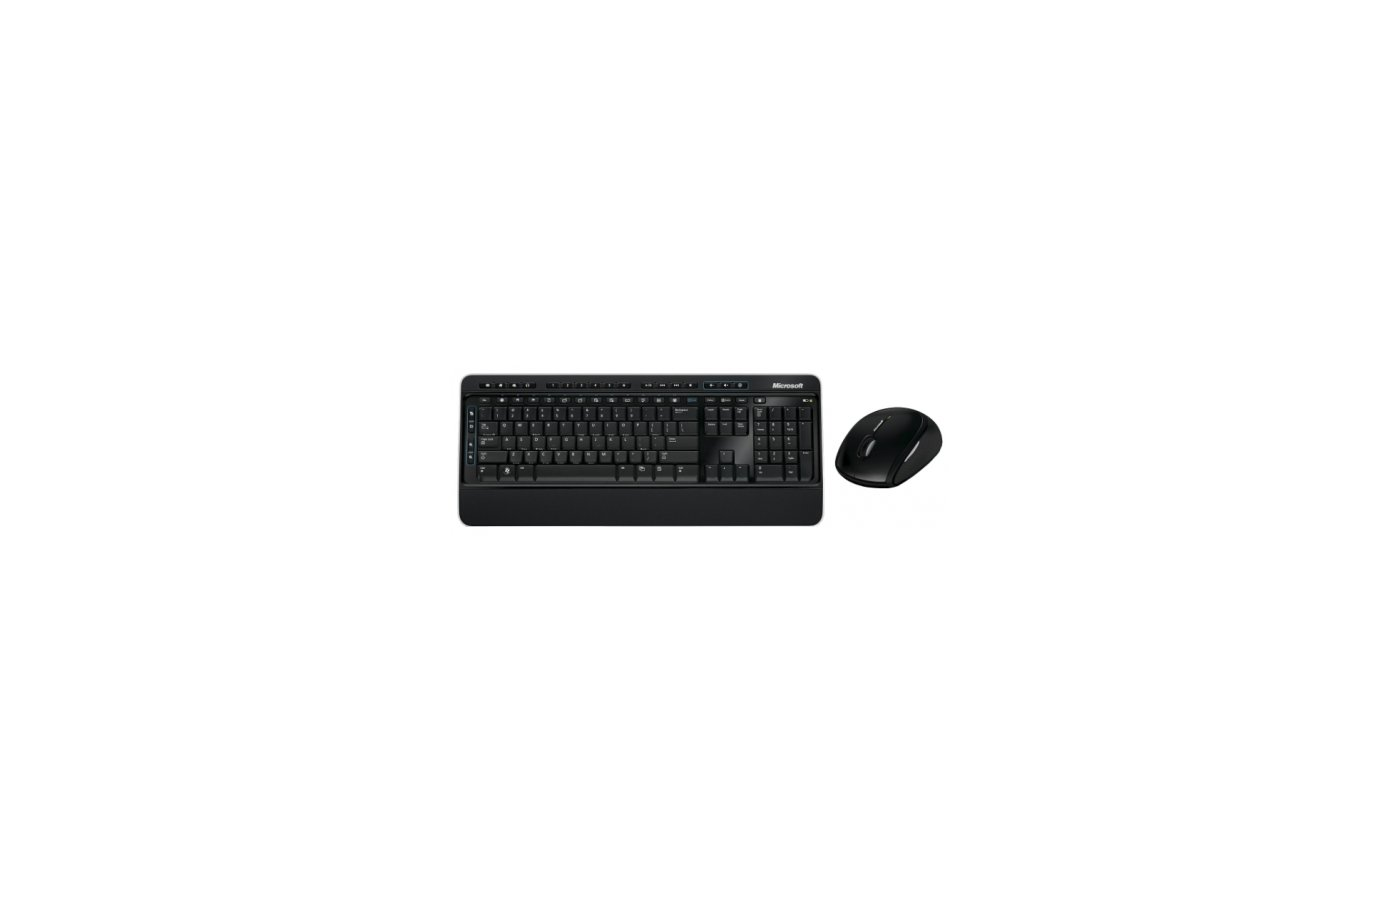 Клавиатура + мышь Microsoft Wireless Desktop 3050 with AES USB Port Retail